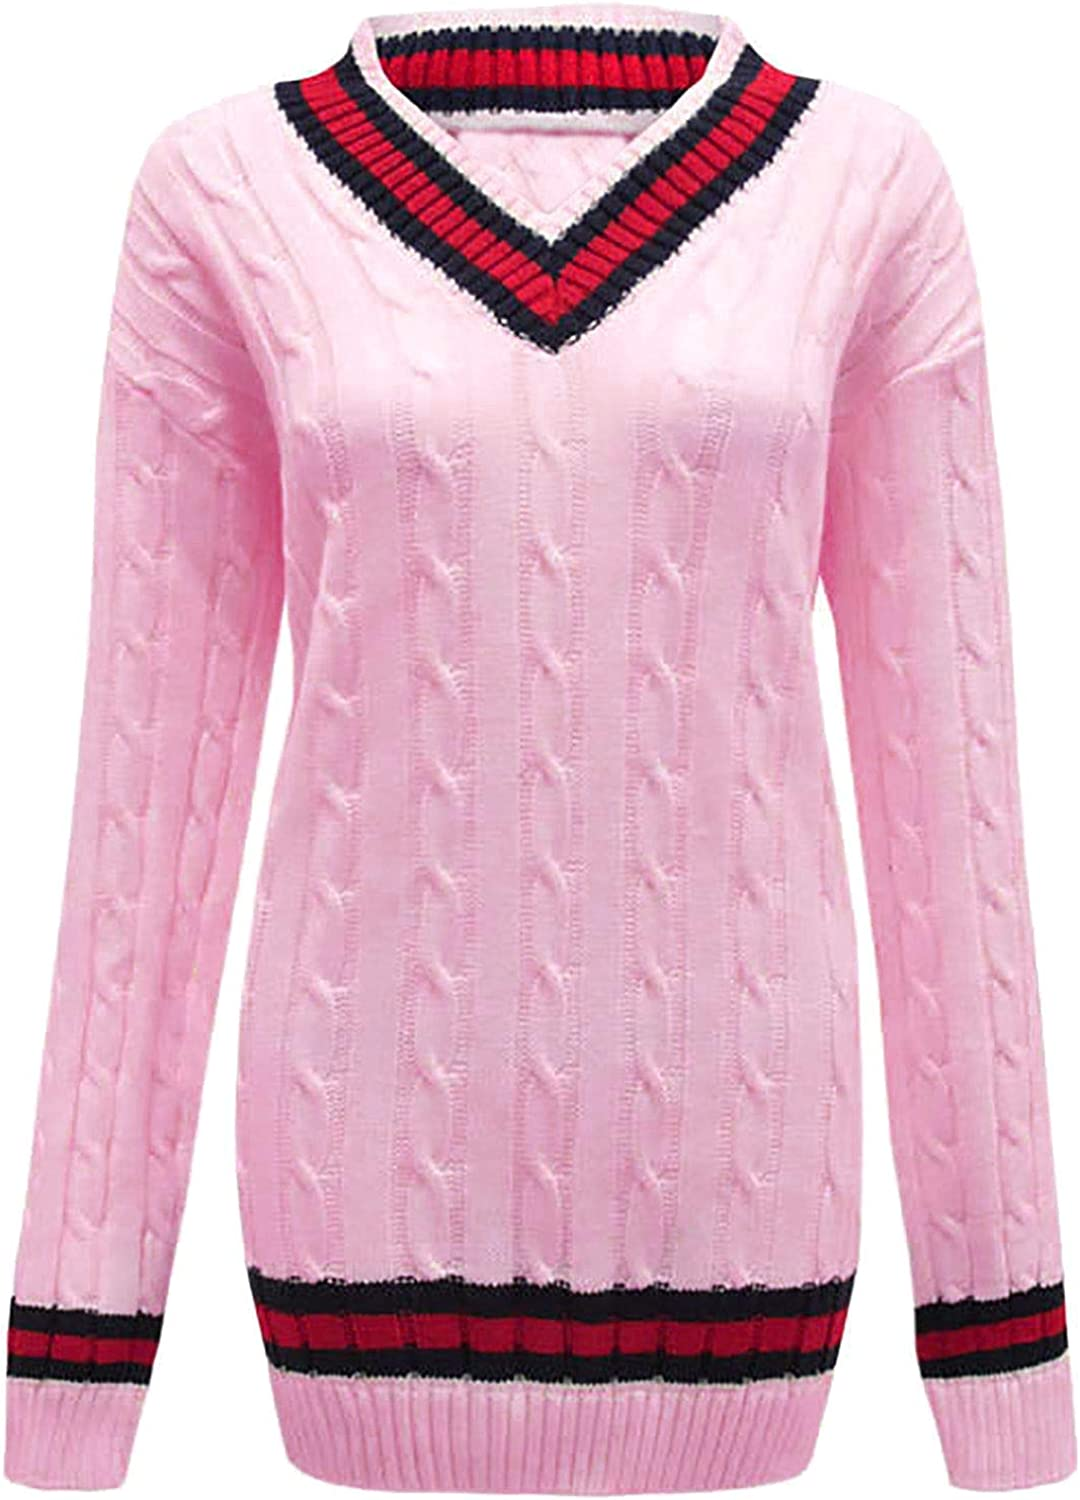 ER Traders Ltd New Ladies V Neck Cable Knitted Cricket Jumper Womens Outdoor Stretch Long Sleeve Striped Sweater Top